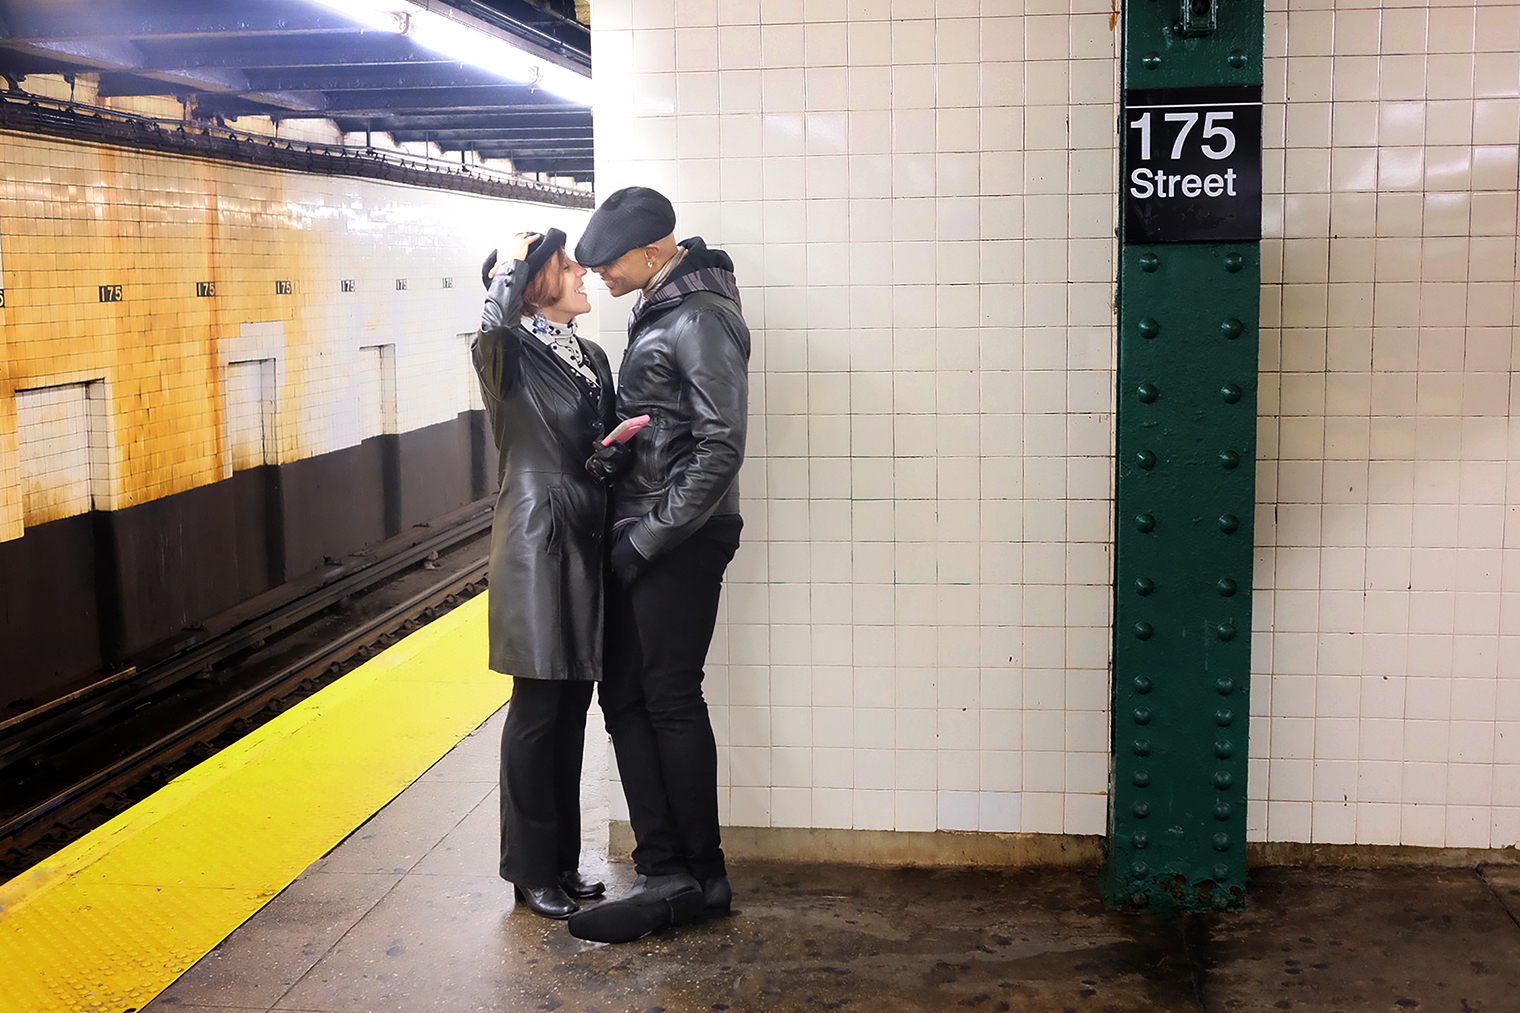 subway-kiss-donna-coney.jpg